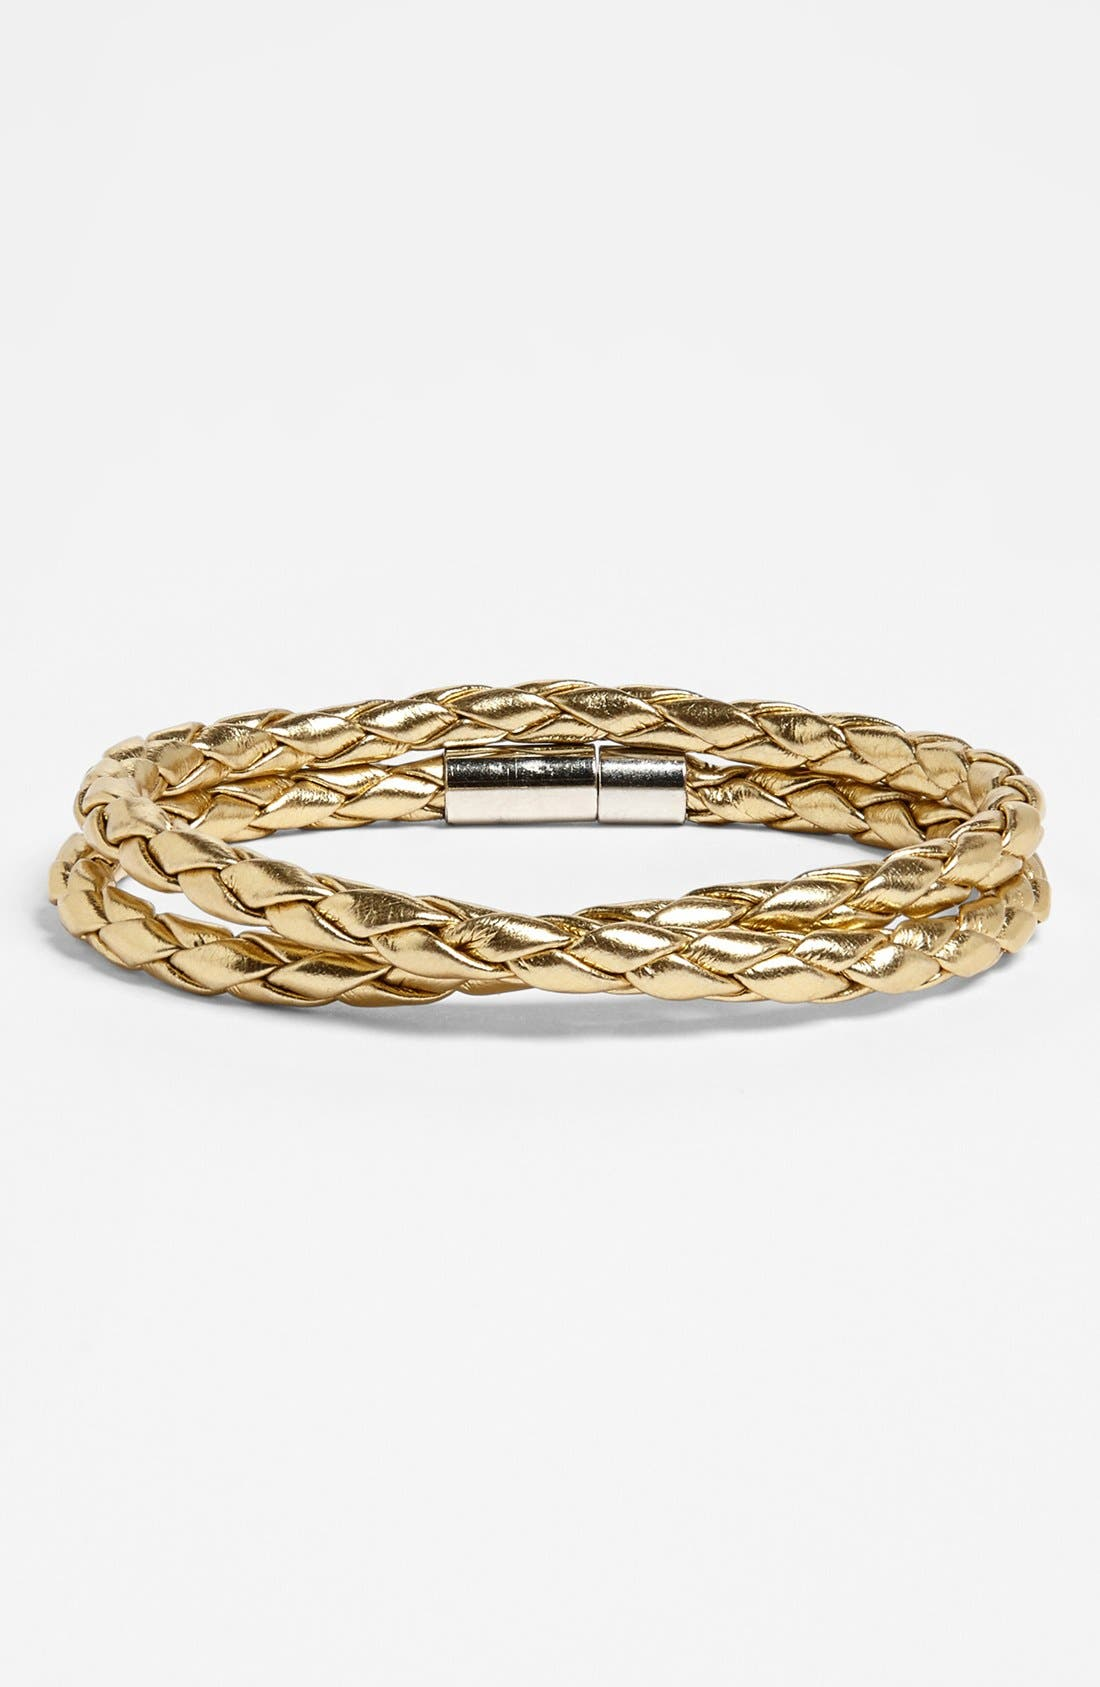 Faux Leather Braided Wrap Bracelet,                         Main,                         color, 710